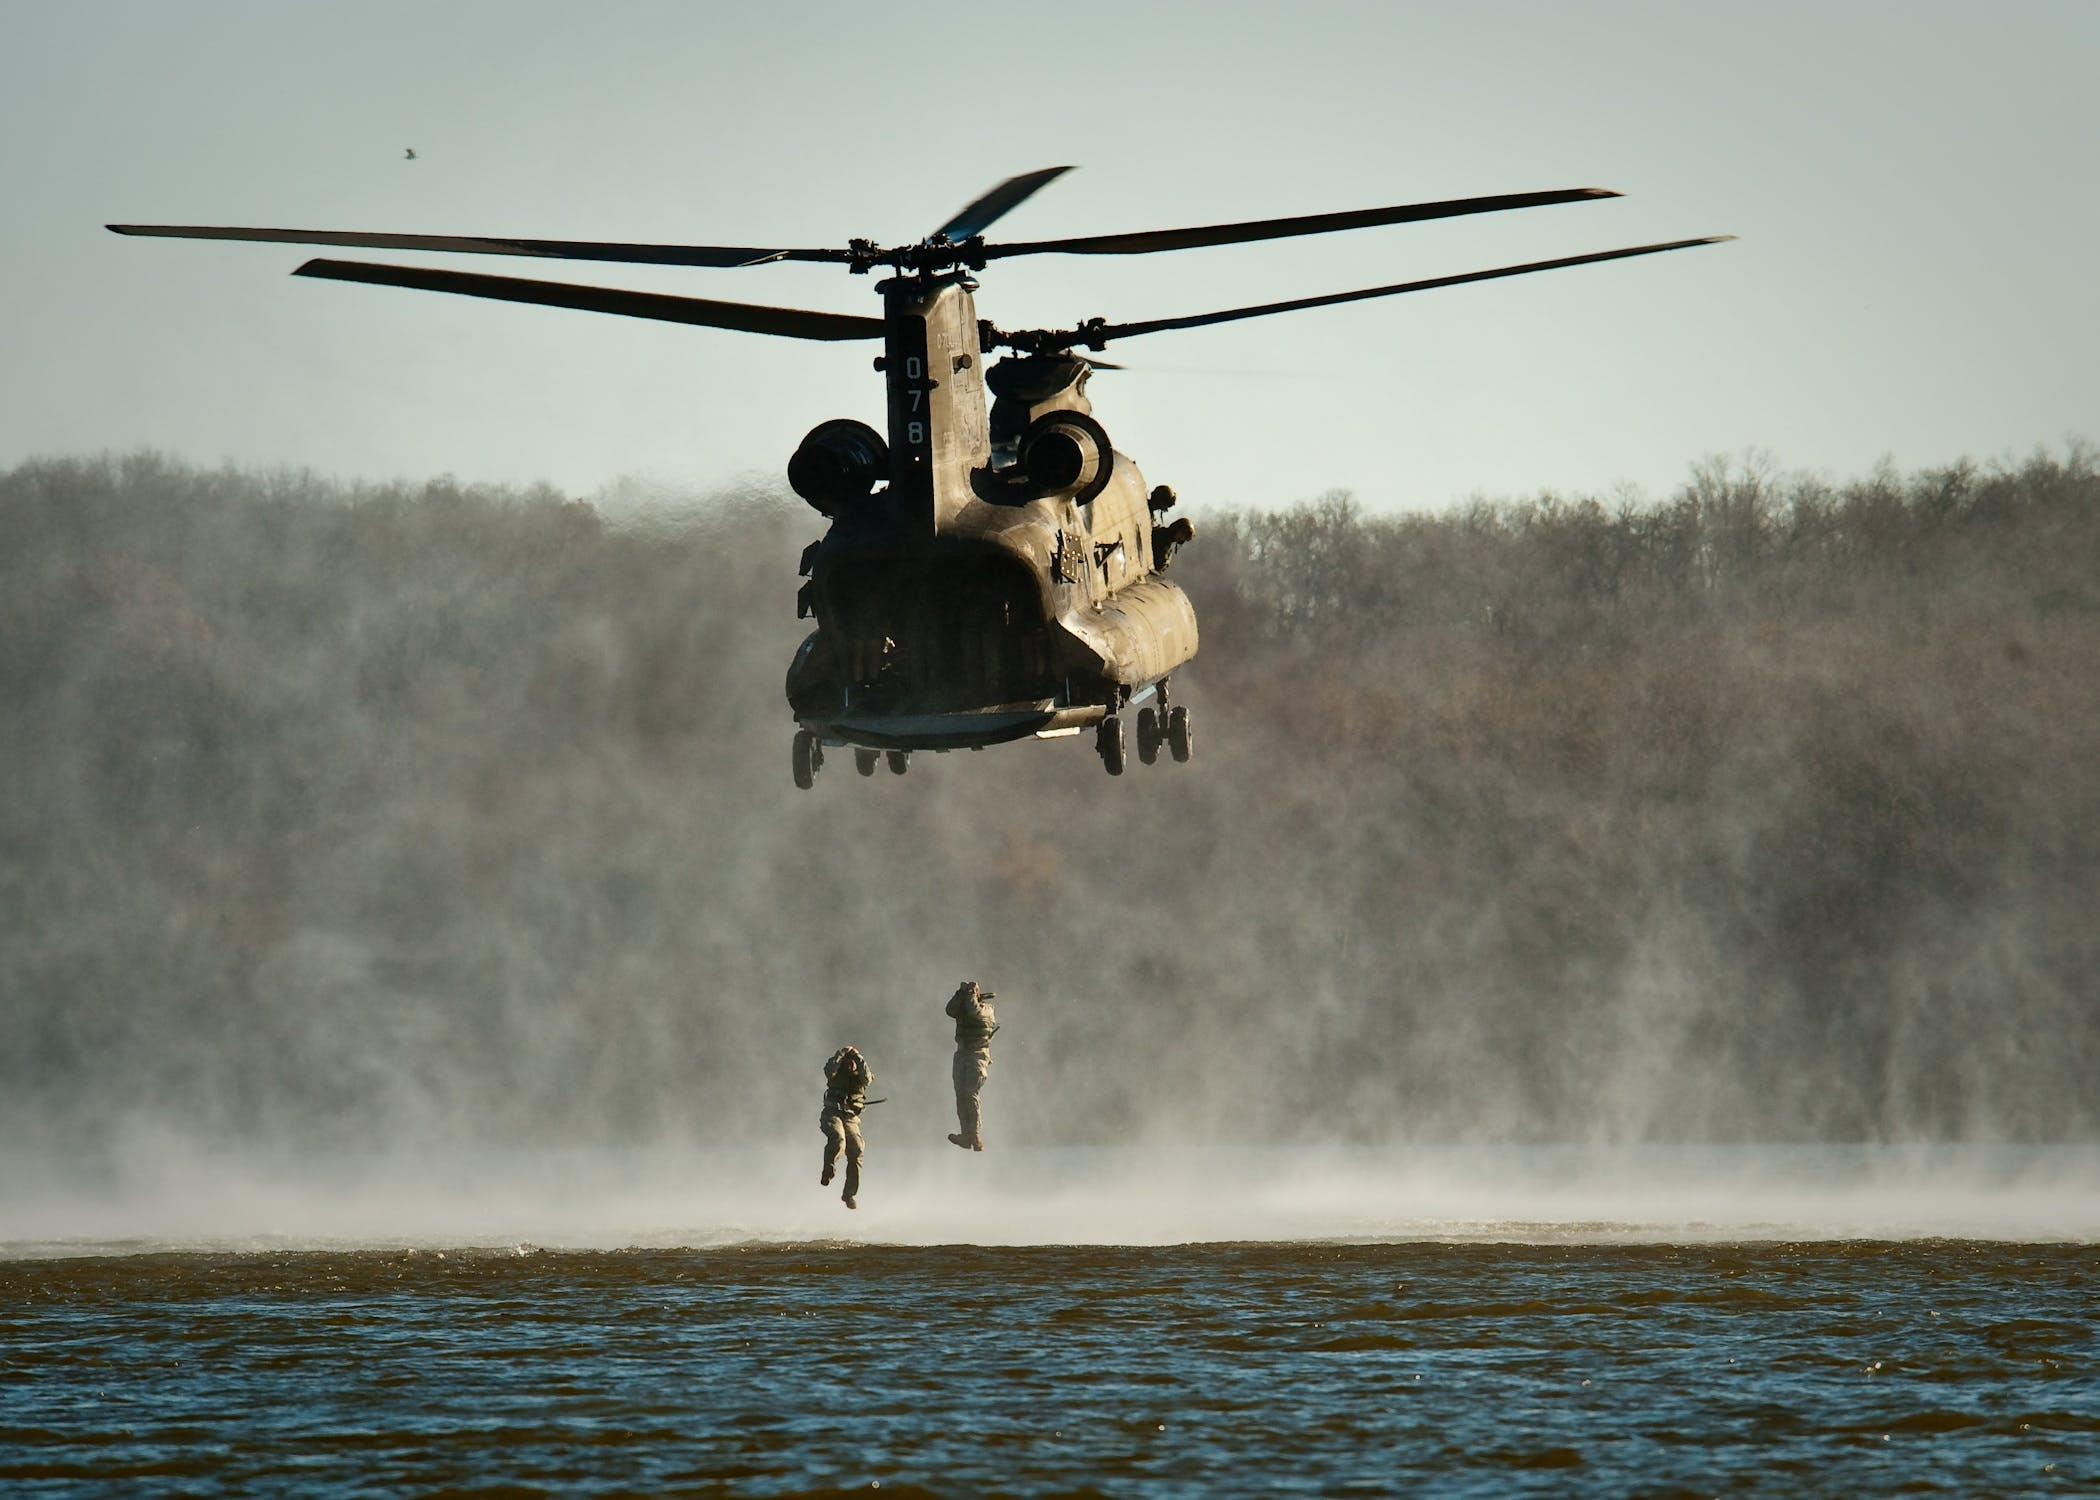 Gray Helicopter Above Body of Water